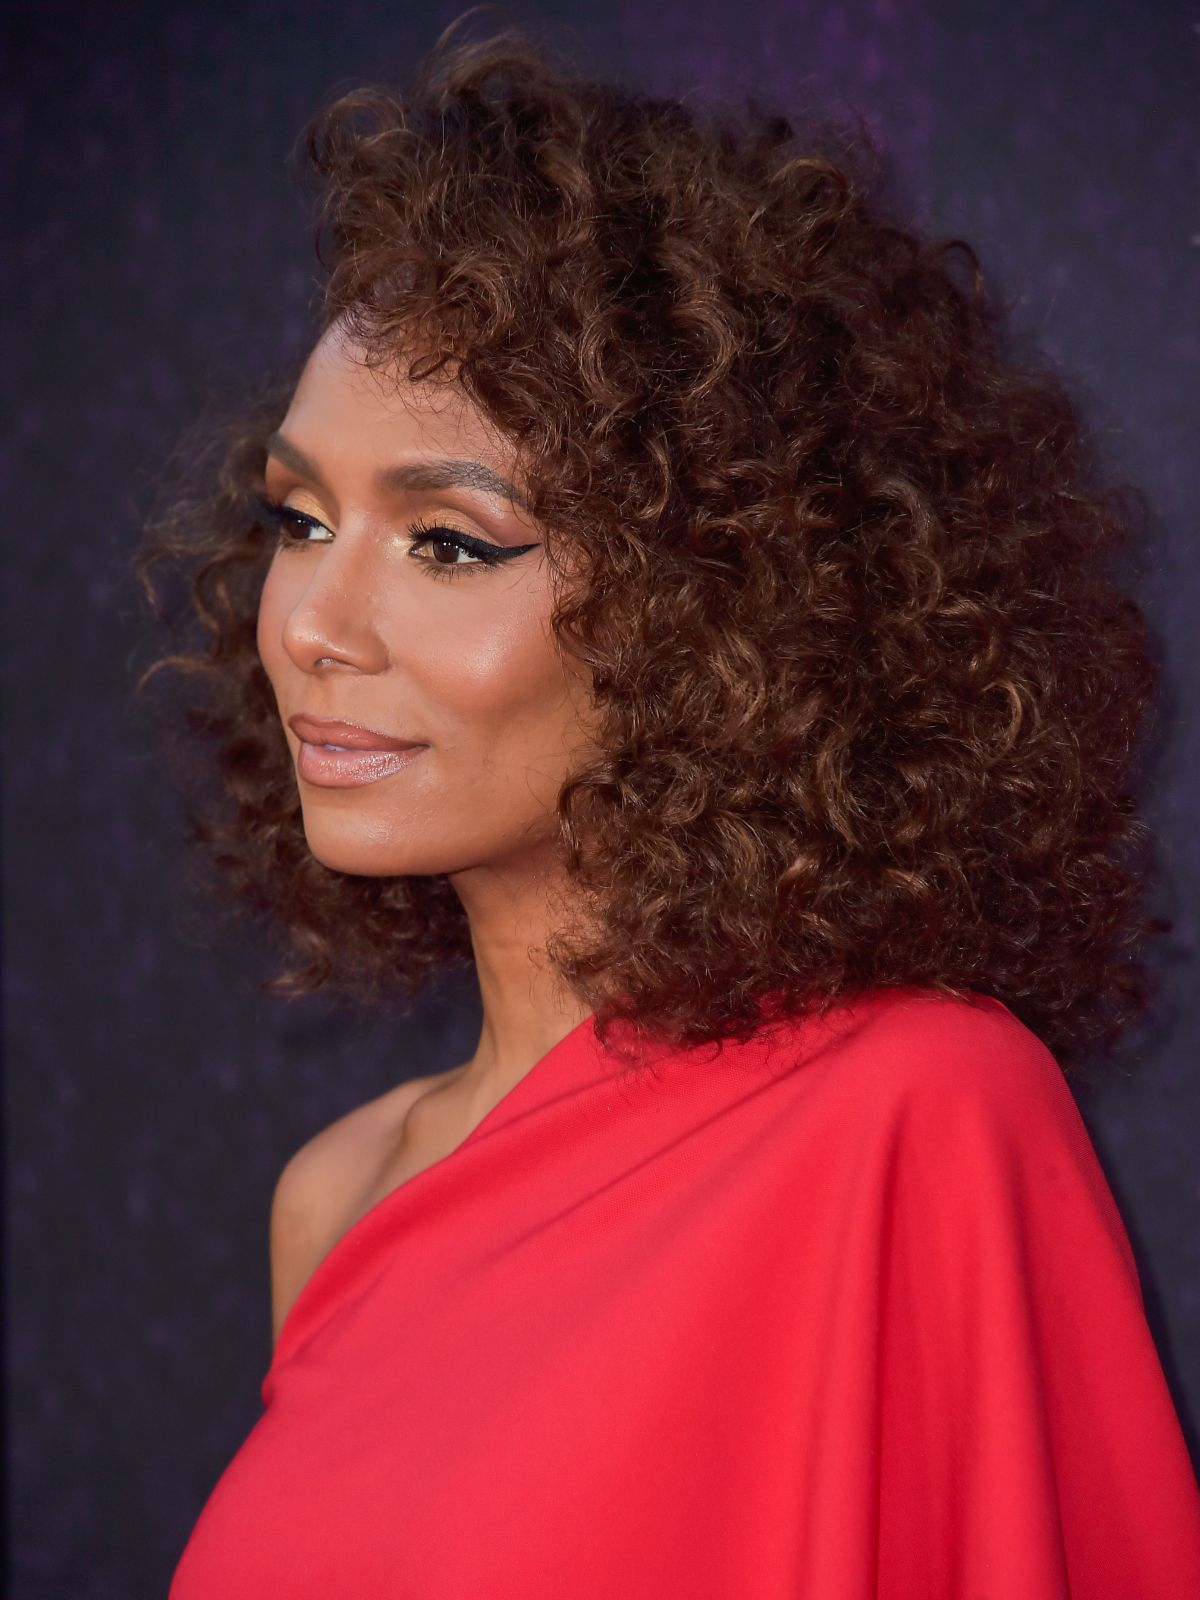 Janet Mock Arrives At The Red Carpet Event For Fx S Pose